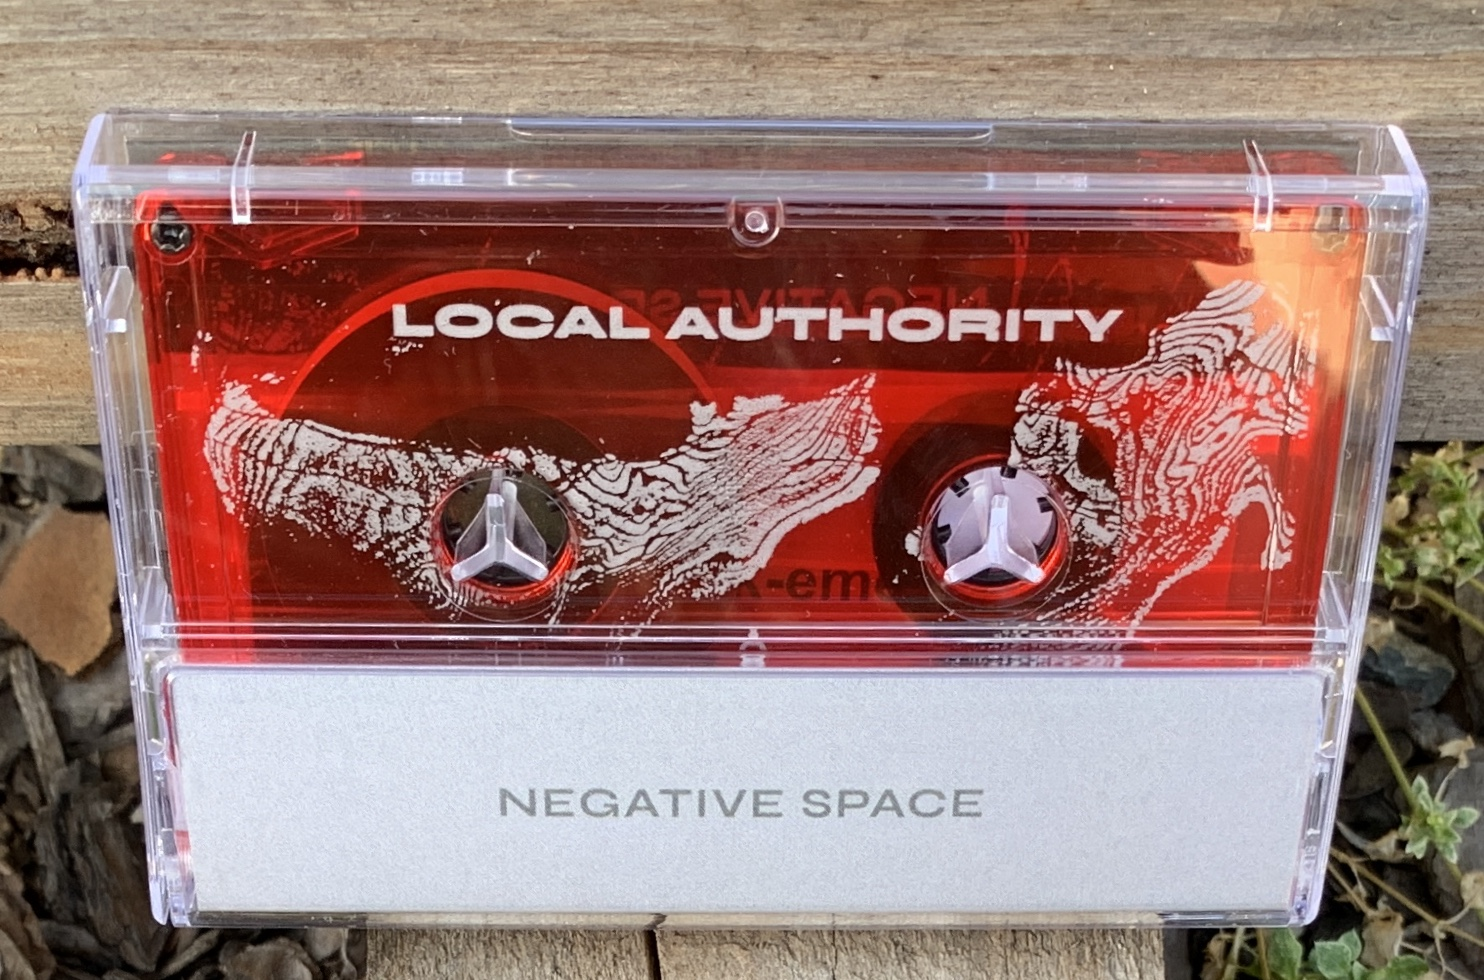 Local Authority - 'Negative Space'